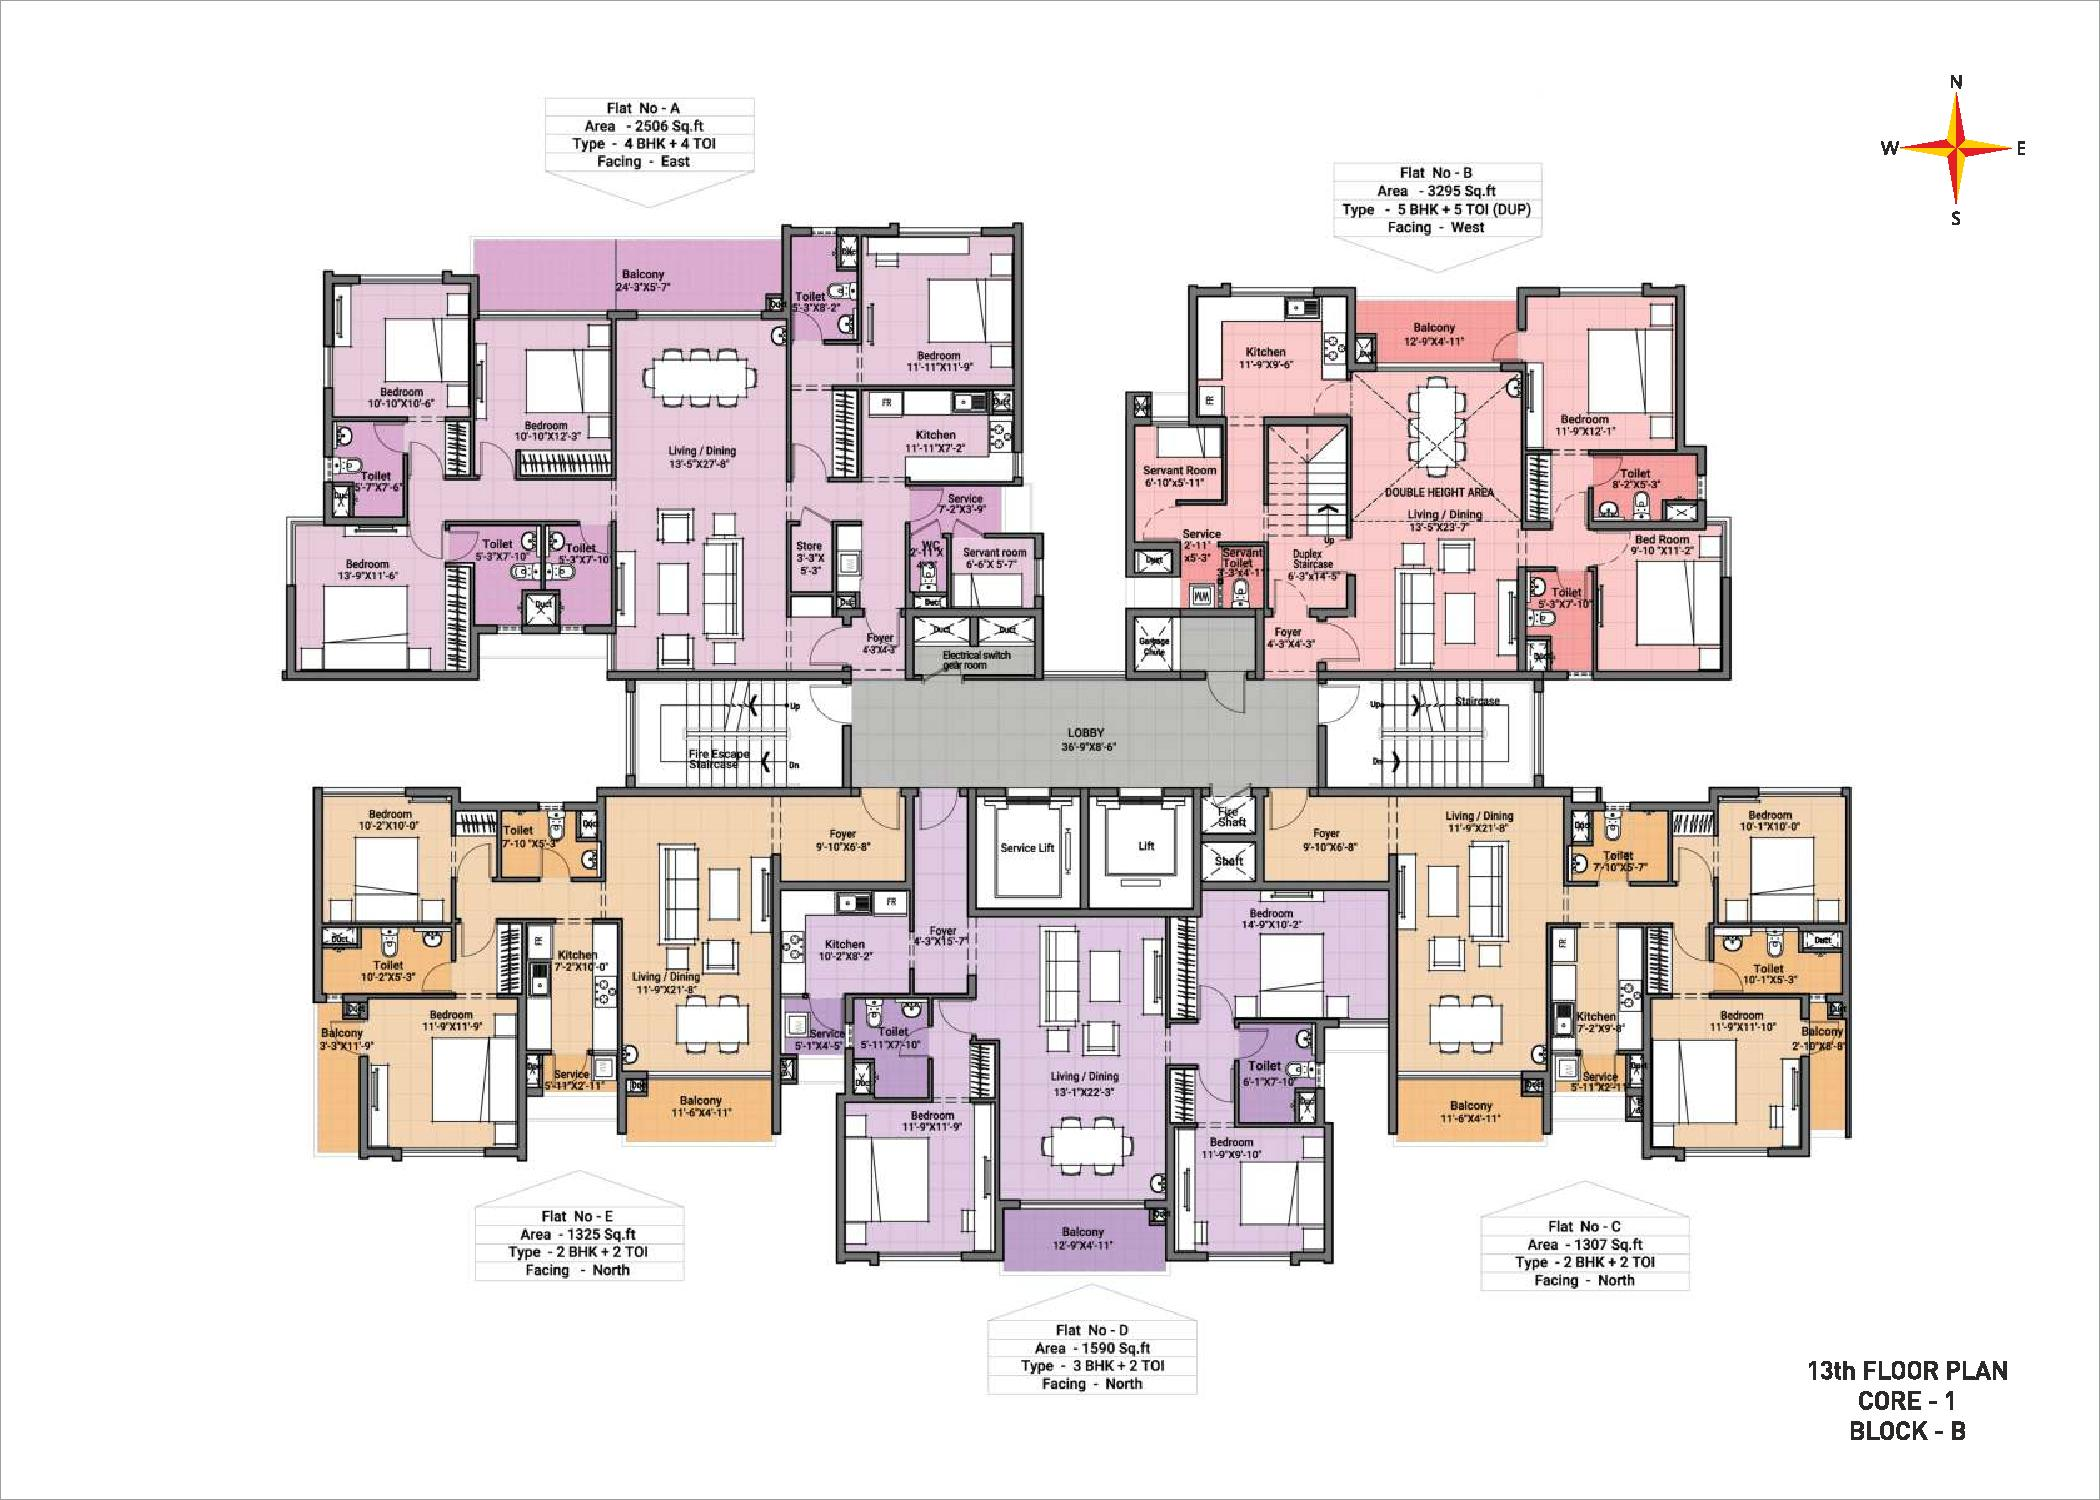 13th Floor plan Block B Core 1